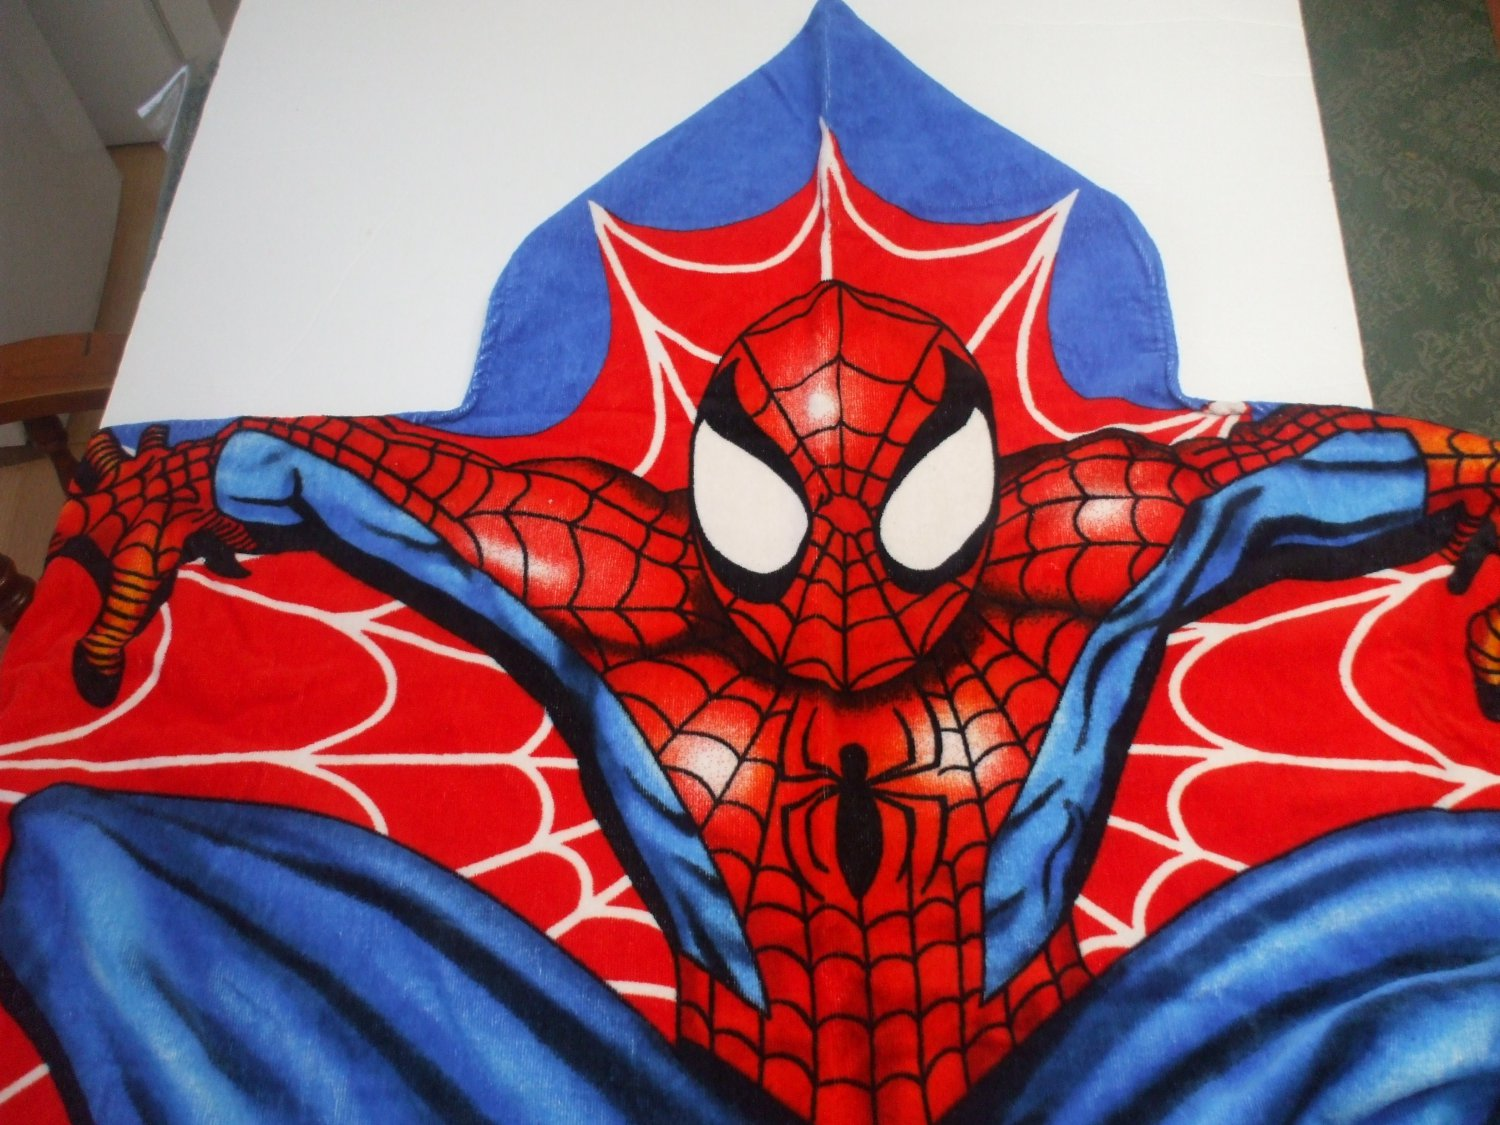 Kids Red And Blue Spiderman Marvel Cotton Terry Bath Towel With Hood Ages 4+